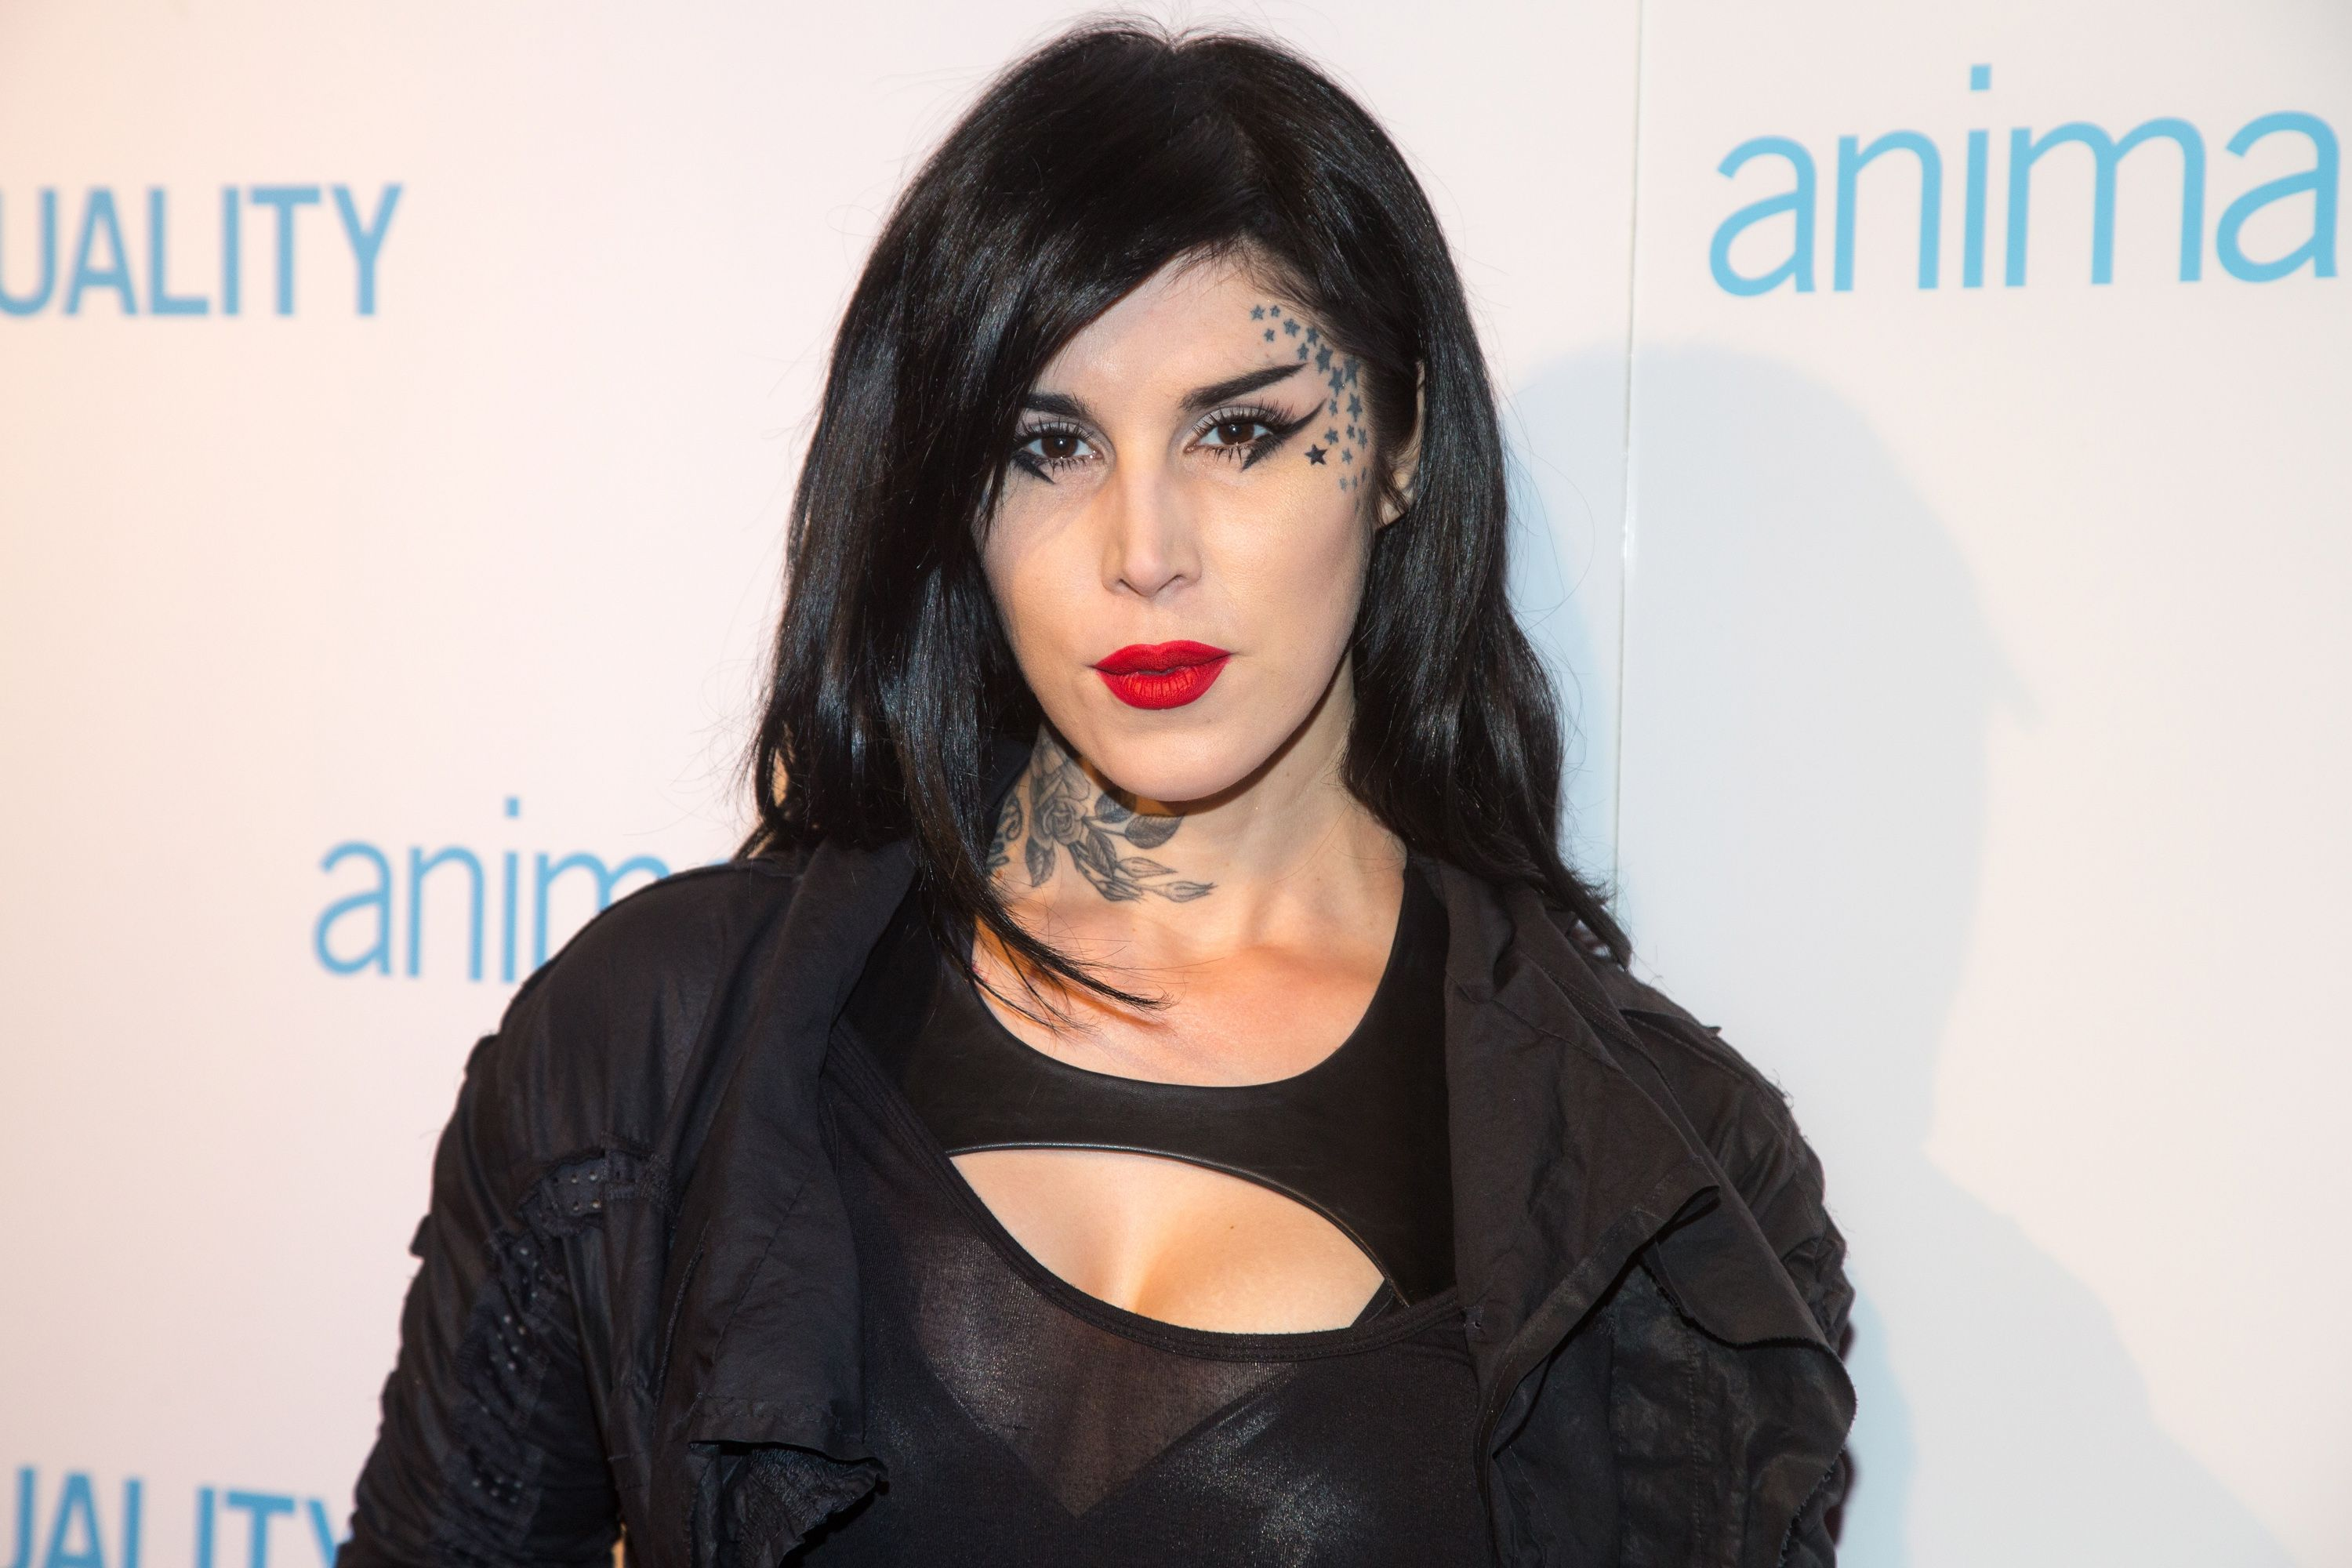 Kat Von D Says She Left The Industry